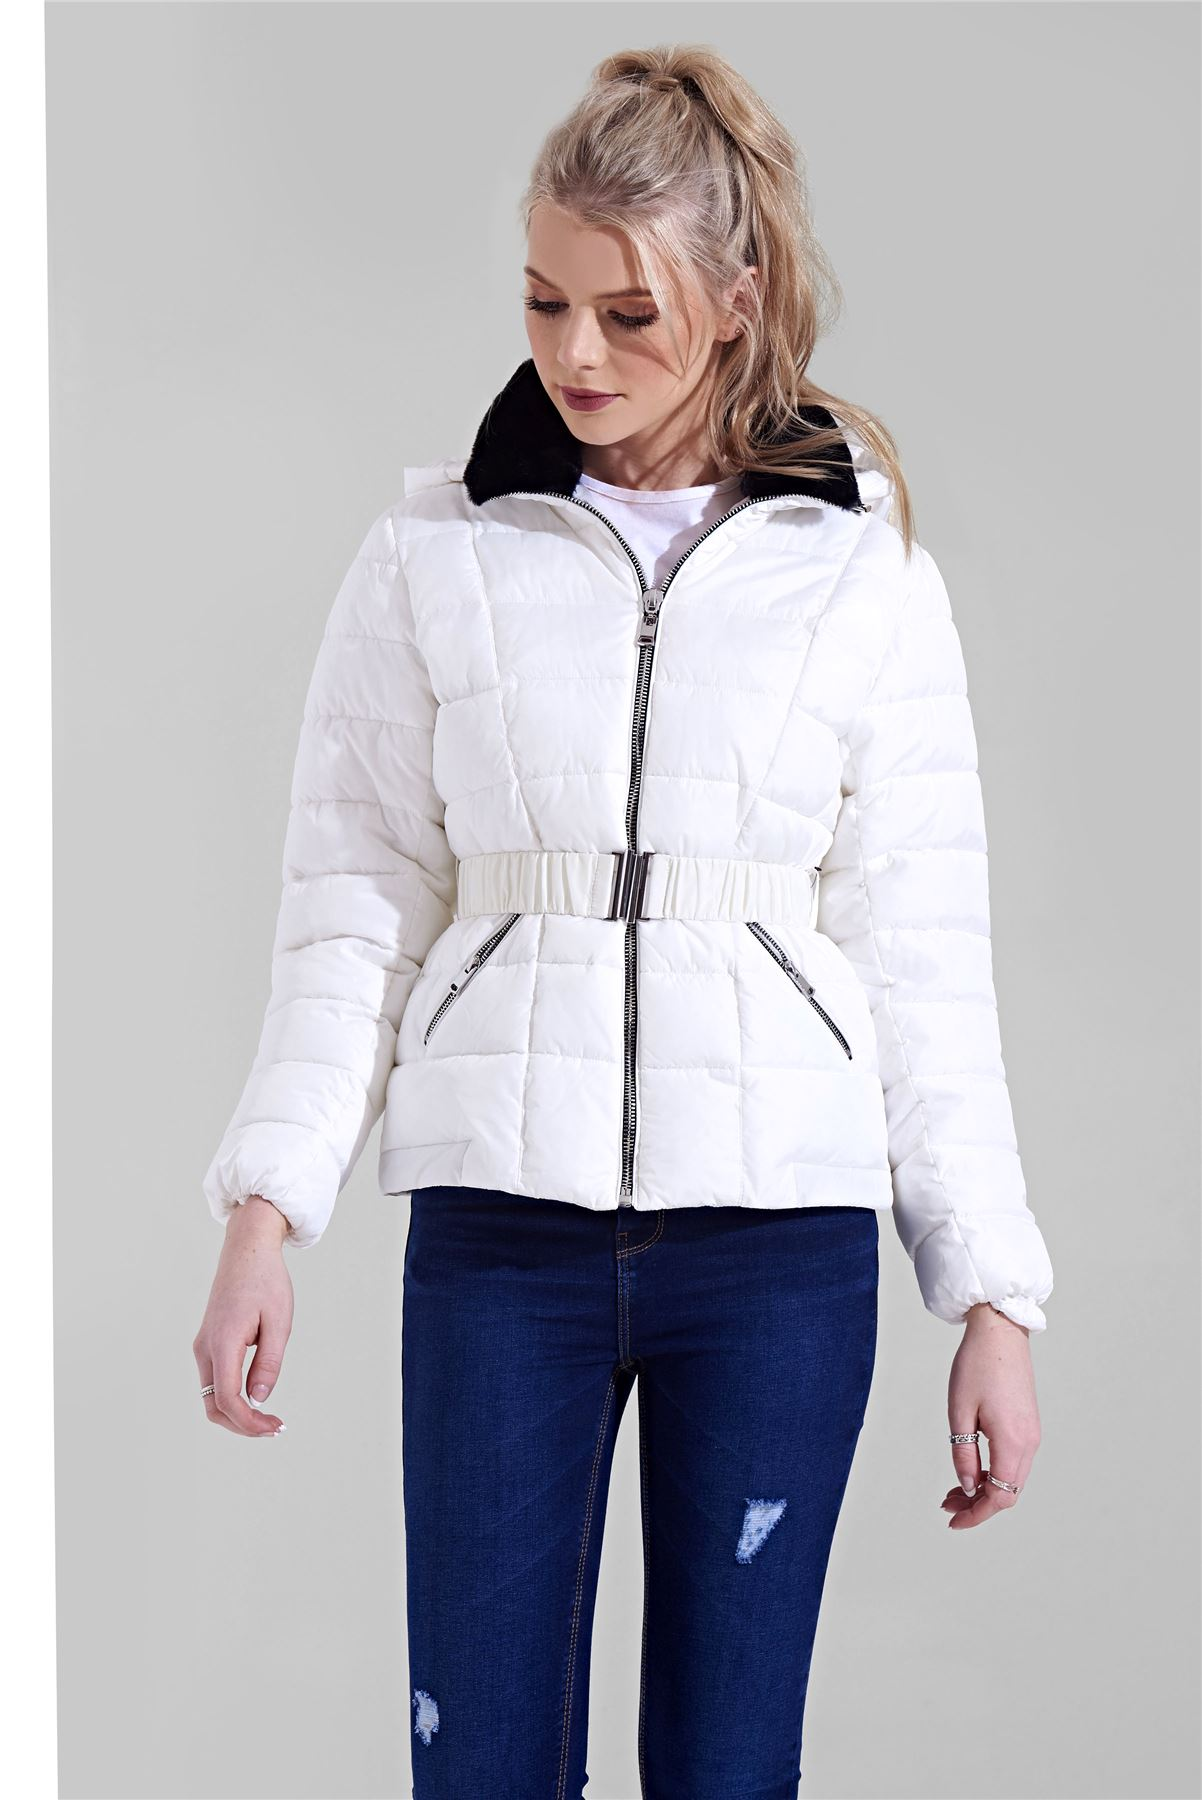 Womens-Ladies-Black-Hood-Belted-Fur-Collar-Zip-Up-Quilted-Puffer-Jacket-Coat thumbnail 11